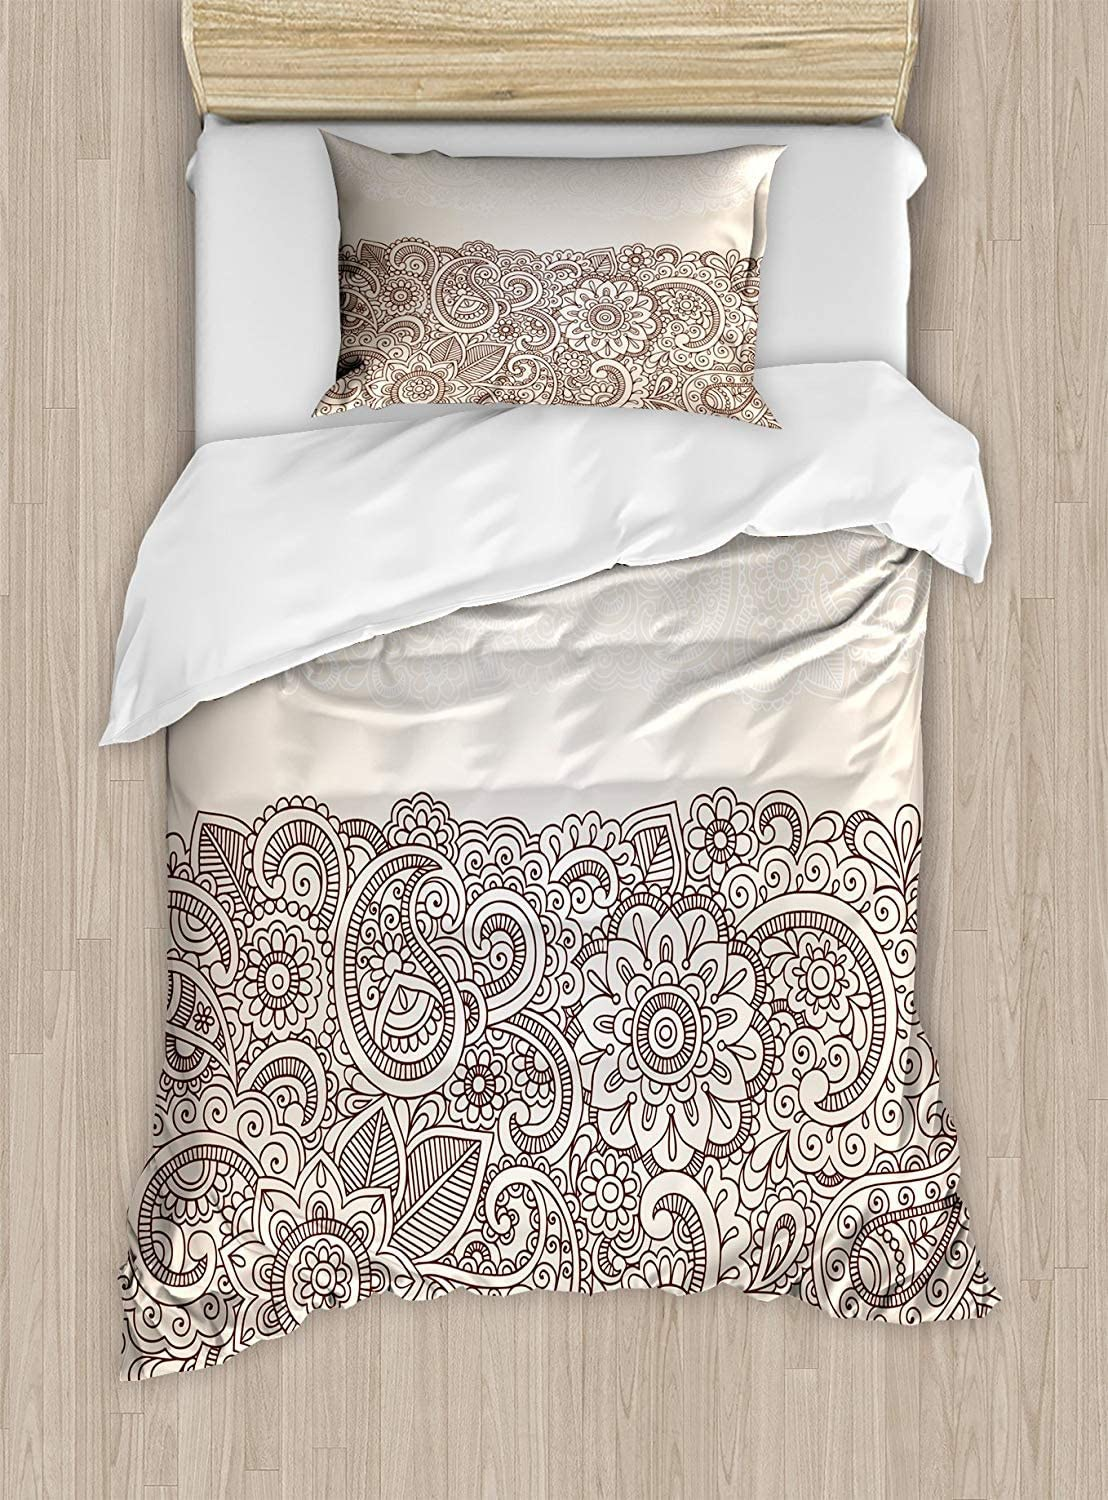 Twin XL Extra Long Bedding Set,Henna Duvet Cover Set,Complex Design with Mandala and Paisley Nature Inspired Traditional Victorian Revival,Cosy House Collection 4 Piece Bedding Setss